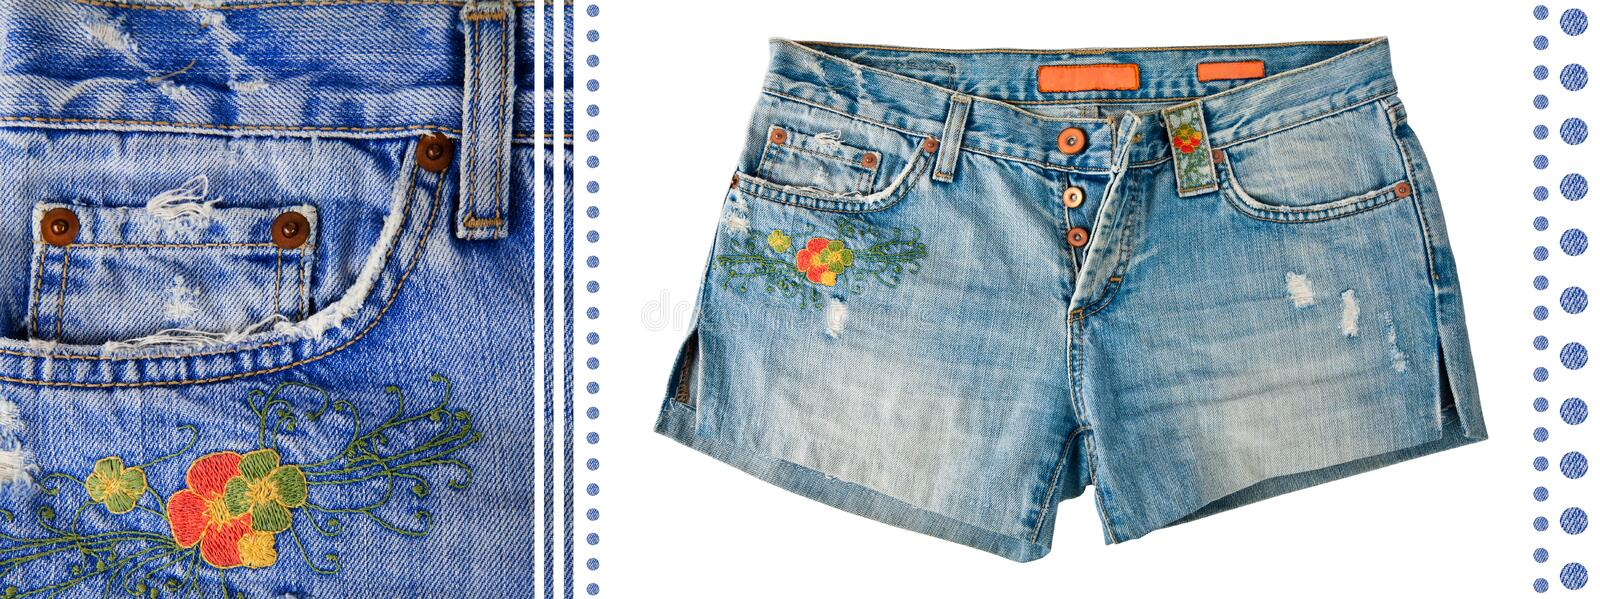 Download Denim Shorts stock image. Image of embroidery, textile - 20923411